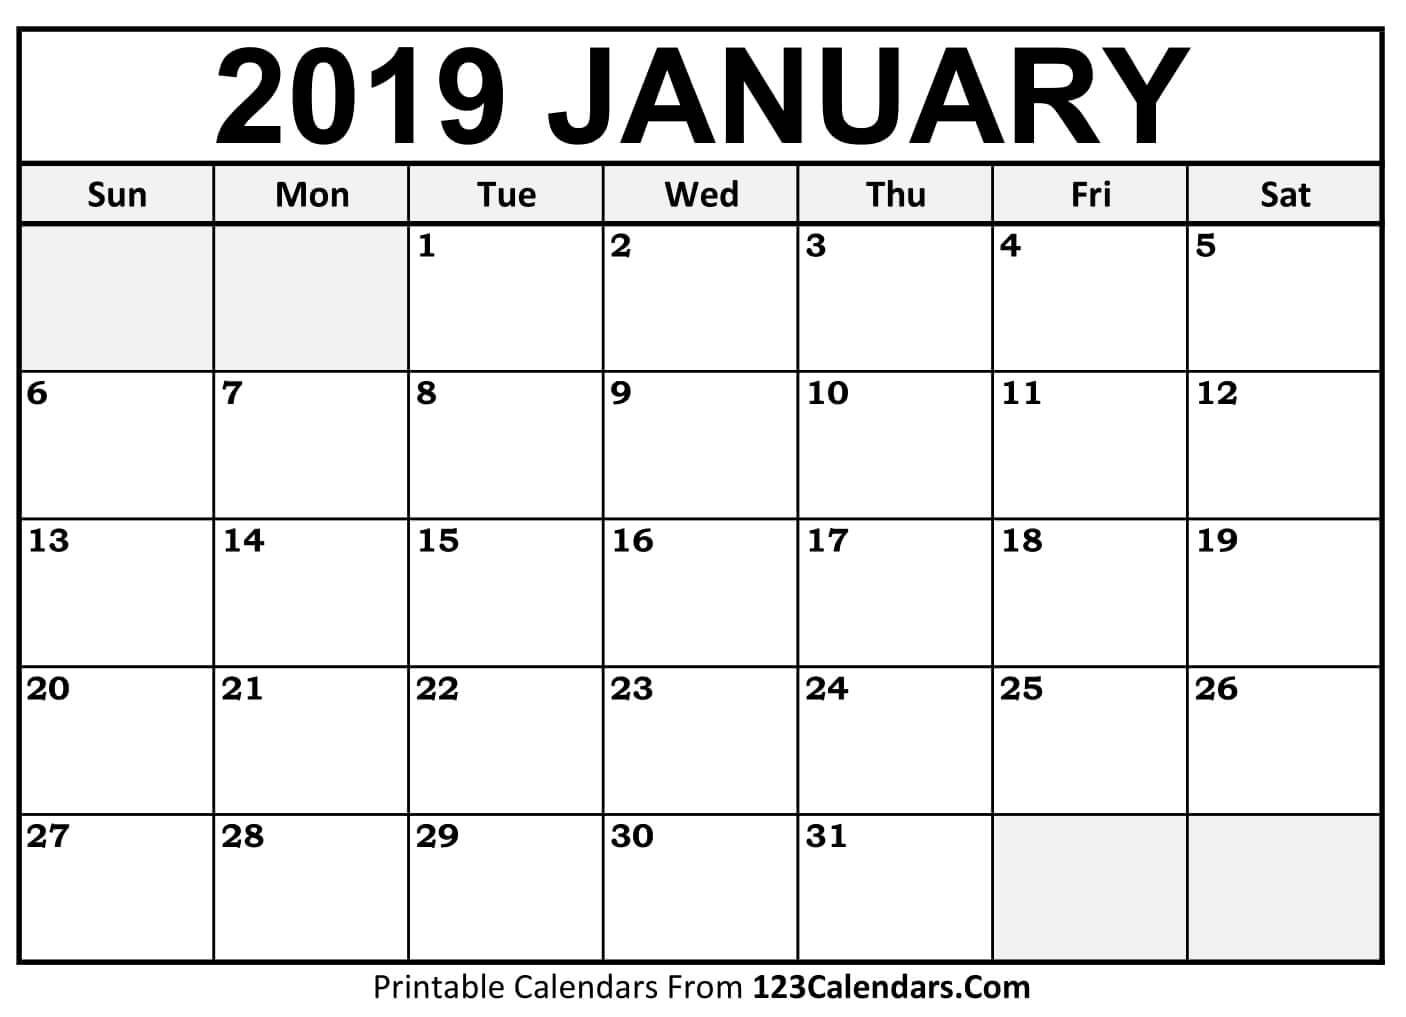 January 2019 Printable Calendar Pdf Free Monthly Template Calendar 2019 January Printable